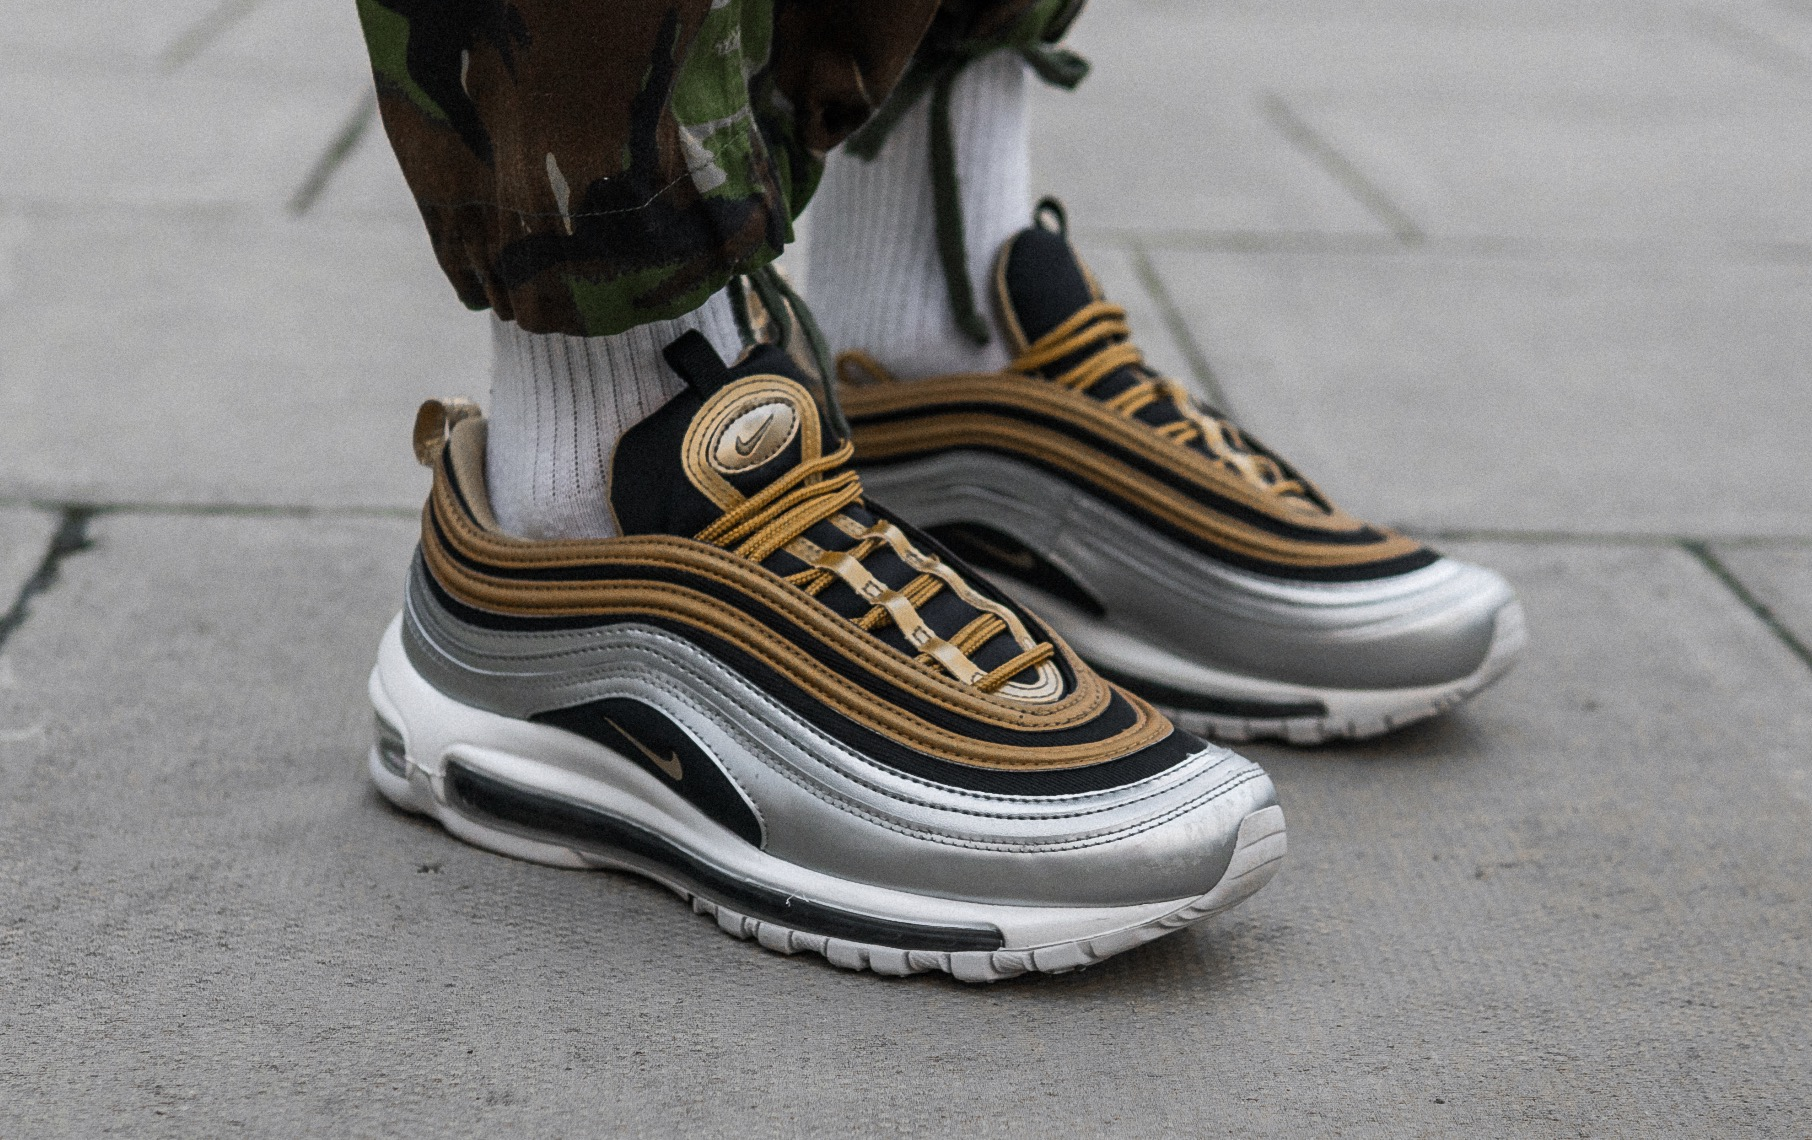 LAST CHANCE To Get Up To 50% Off Your Favourite Nike Air Max 97's.